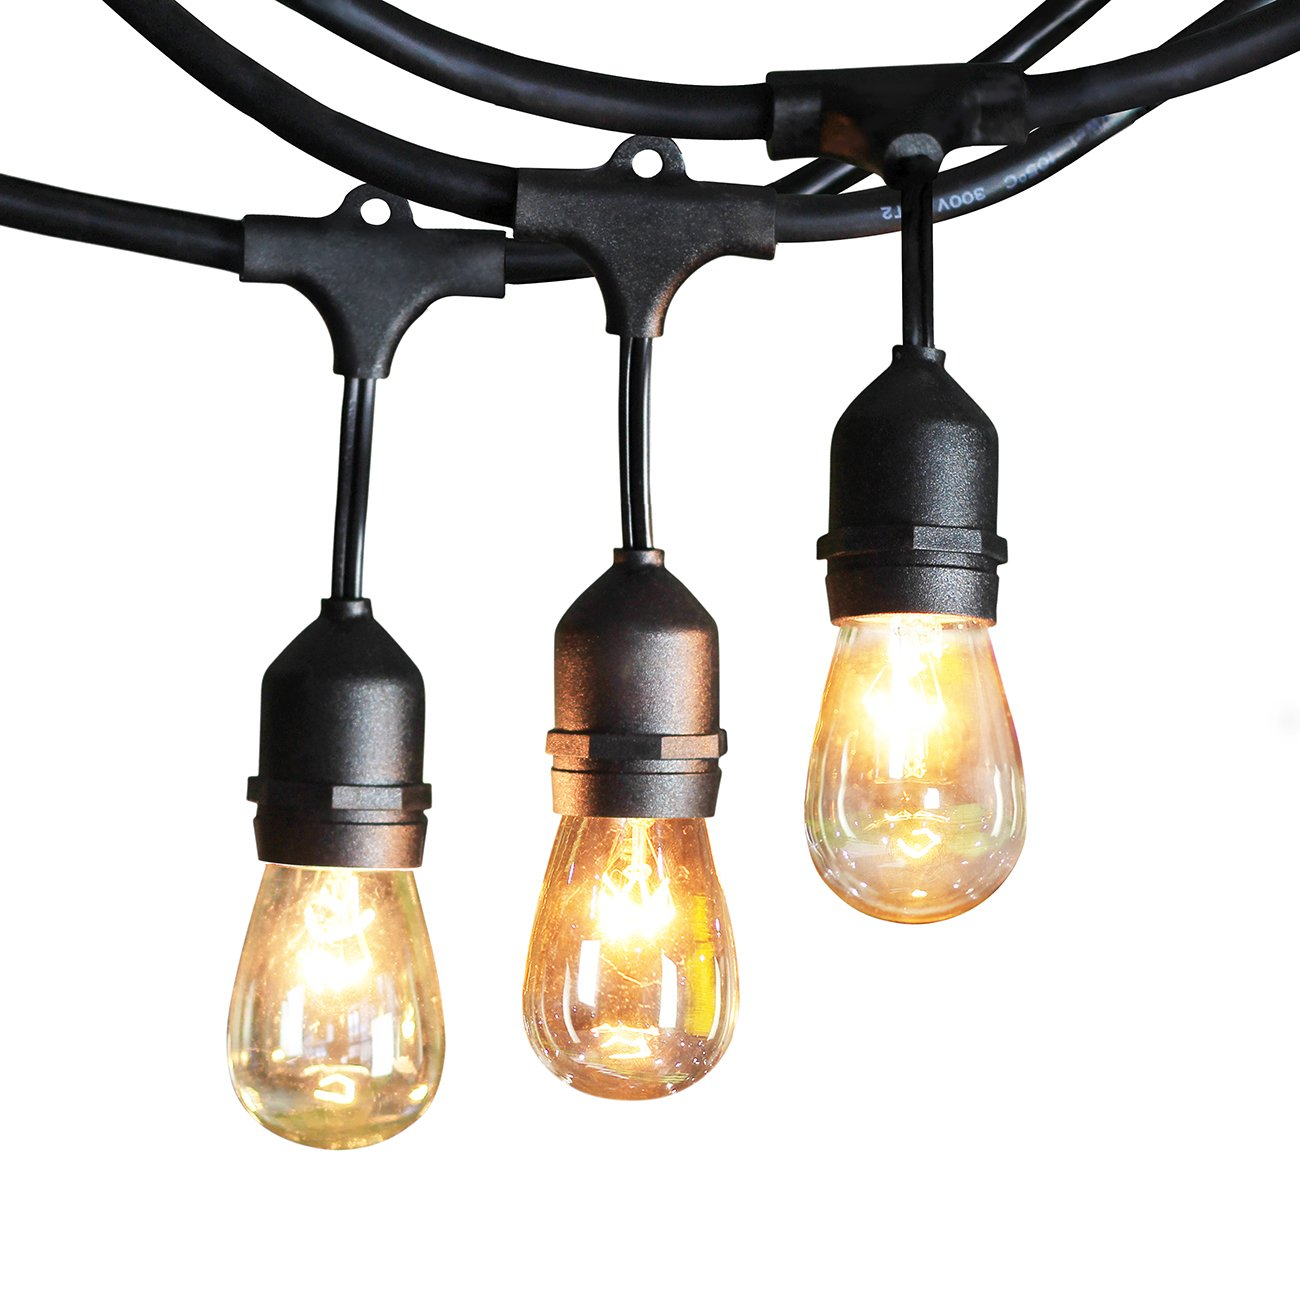 SHINE HAI 48-Foot Weatherproof Outdoor String Lights - UL-listed Commercial Grade - 24 Hanging Sockets- Perfect Patio Lights & Party Lights-Black- 26 11S14 Incandescent Bulbs Included